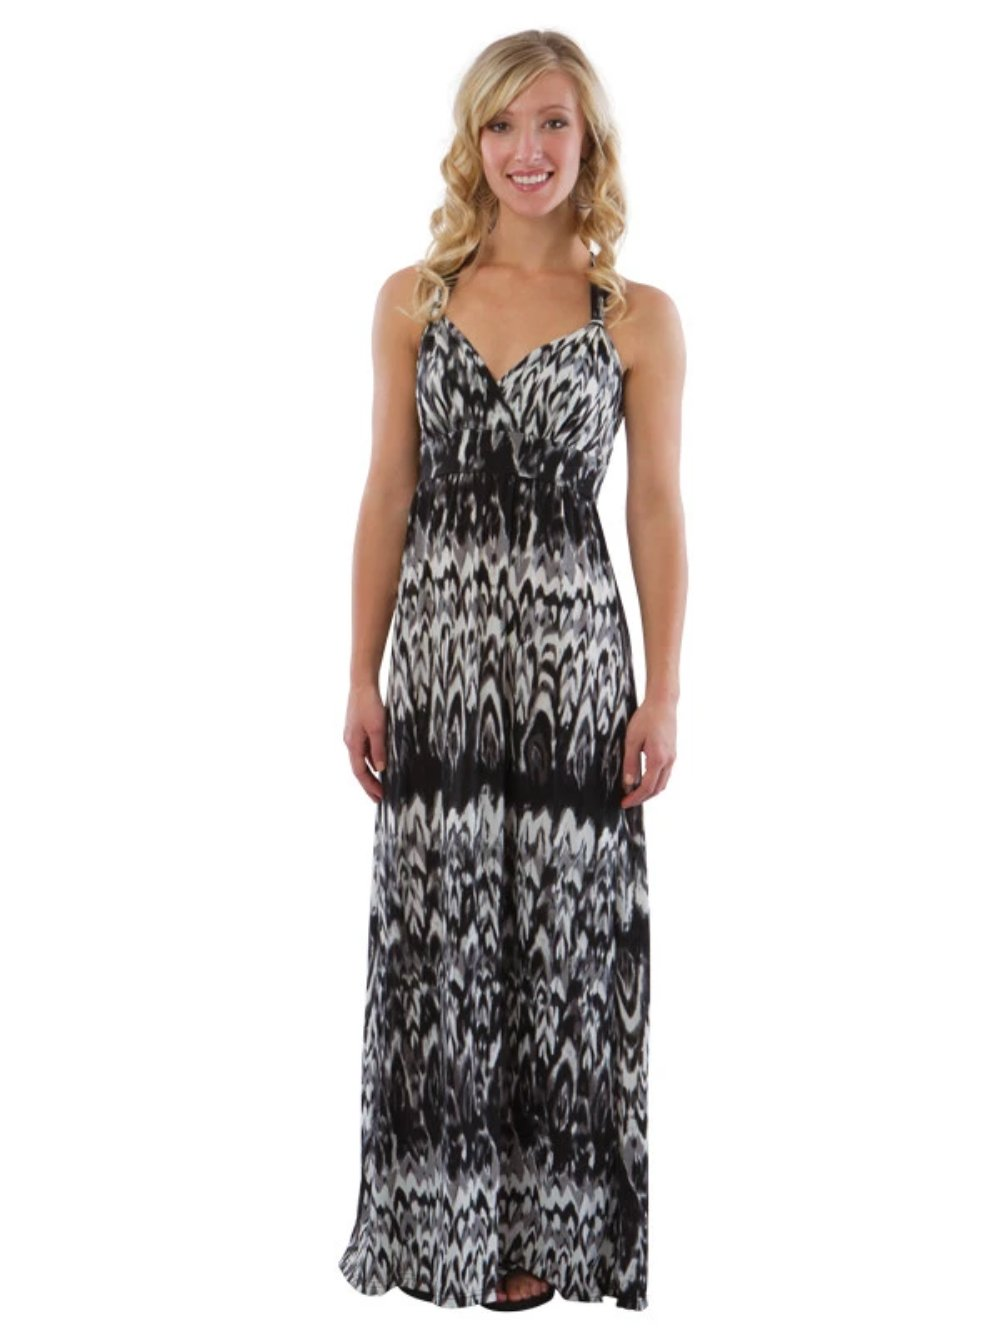 Maxi Beach Dress with Adjustable Faux Halter, Black/White